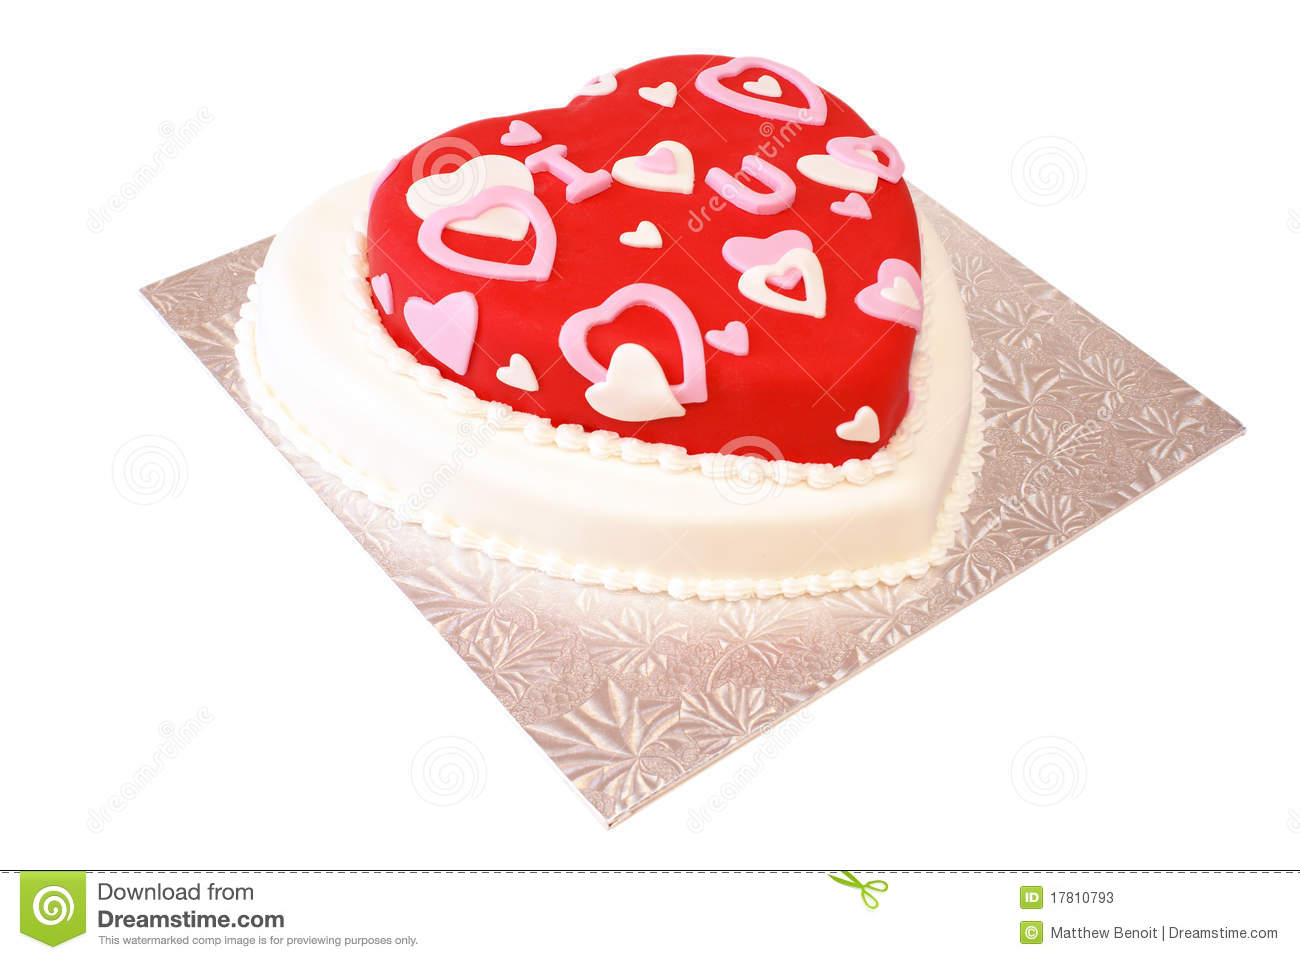 Heart Shaped Cake Stock Photos : Heart Shaped Cake Stock Photos - Image: 17810793